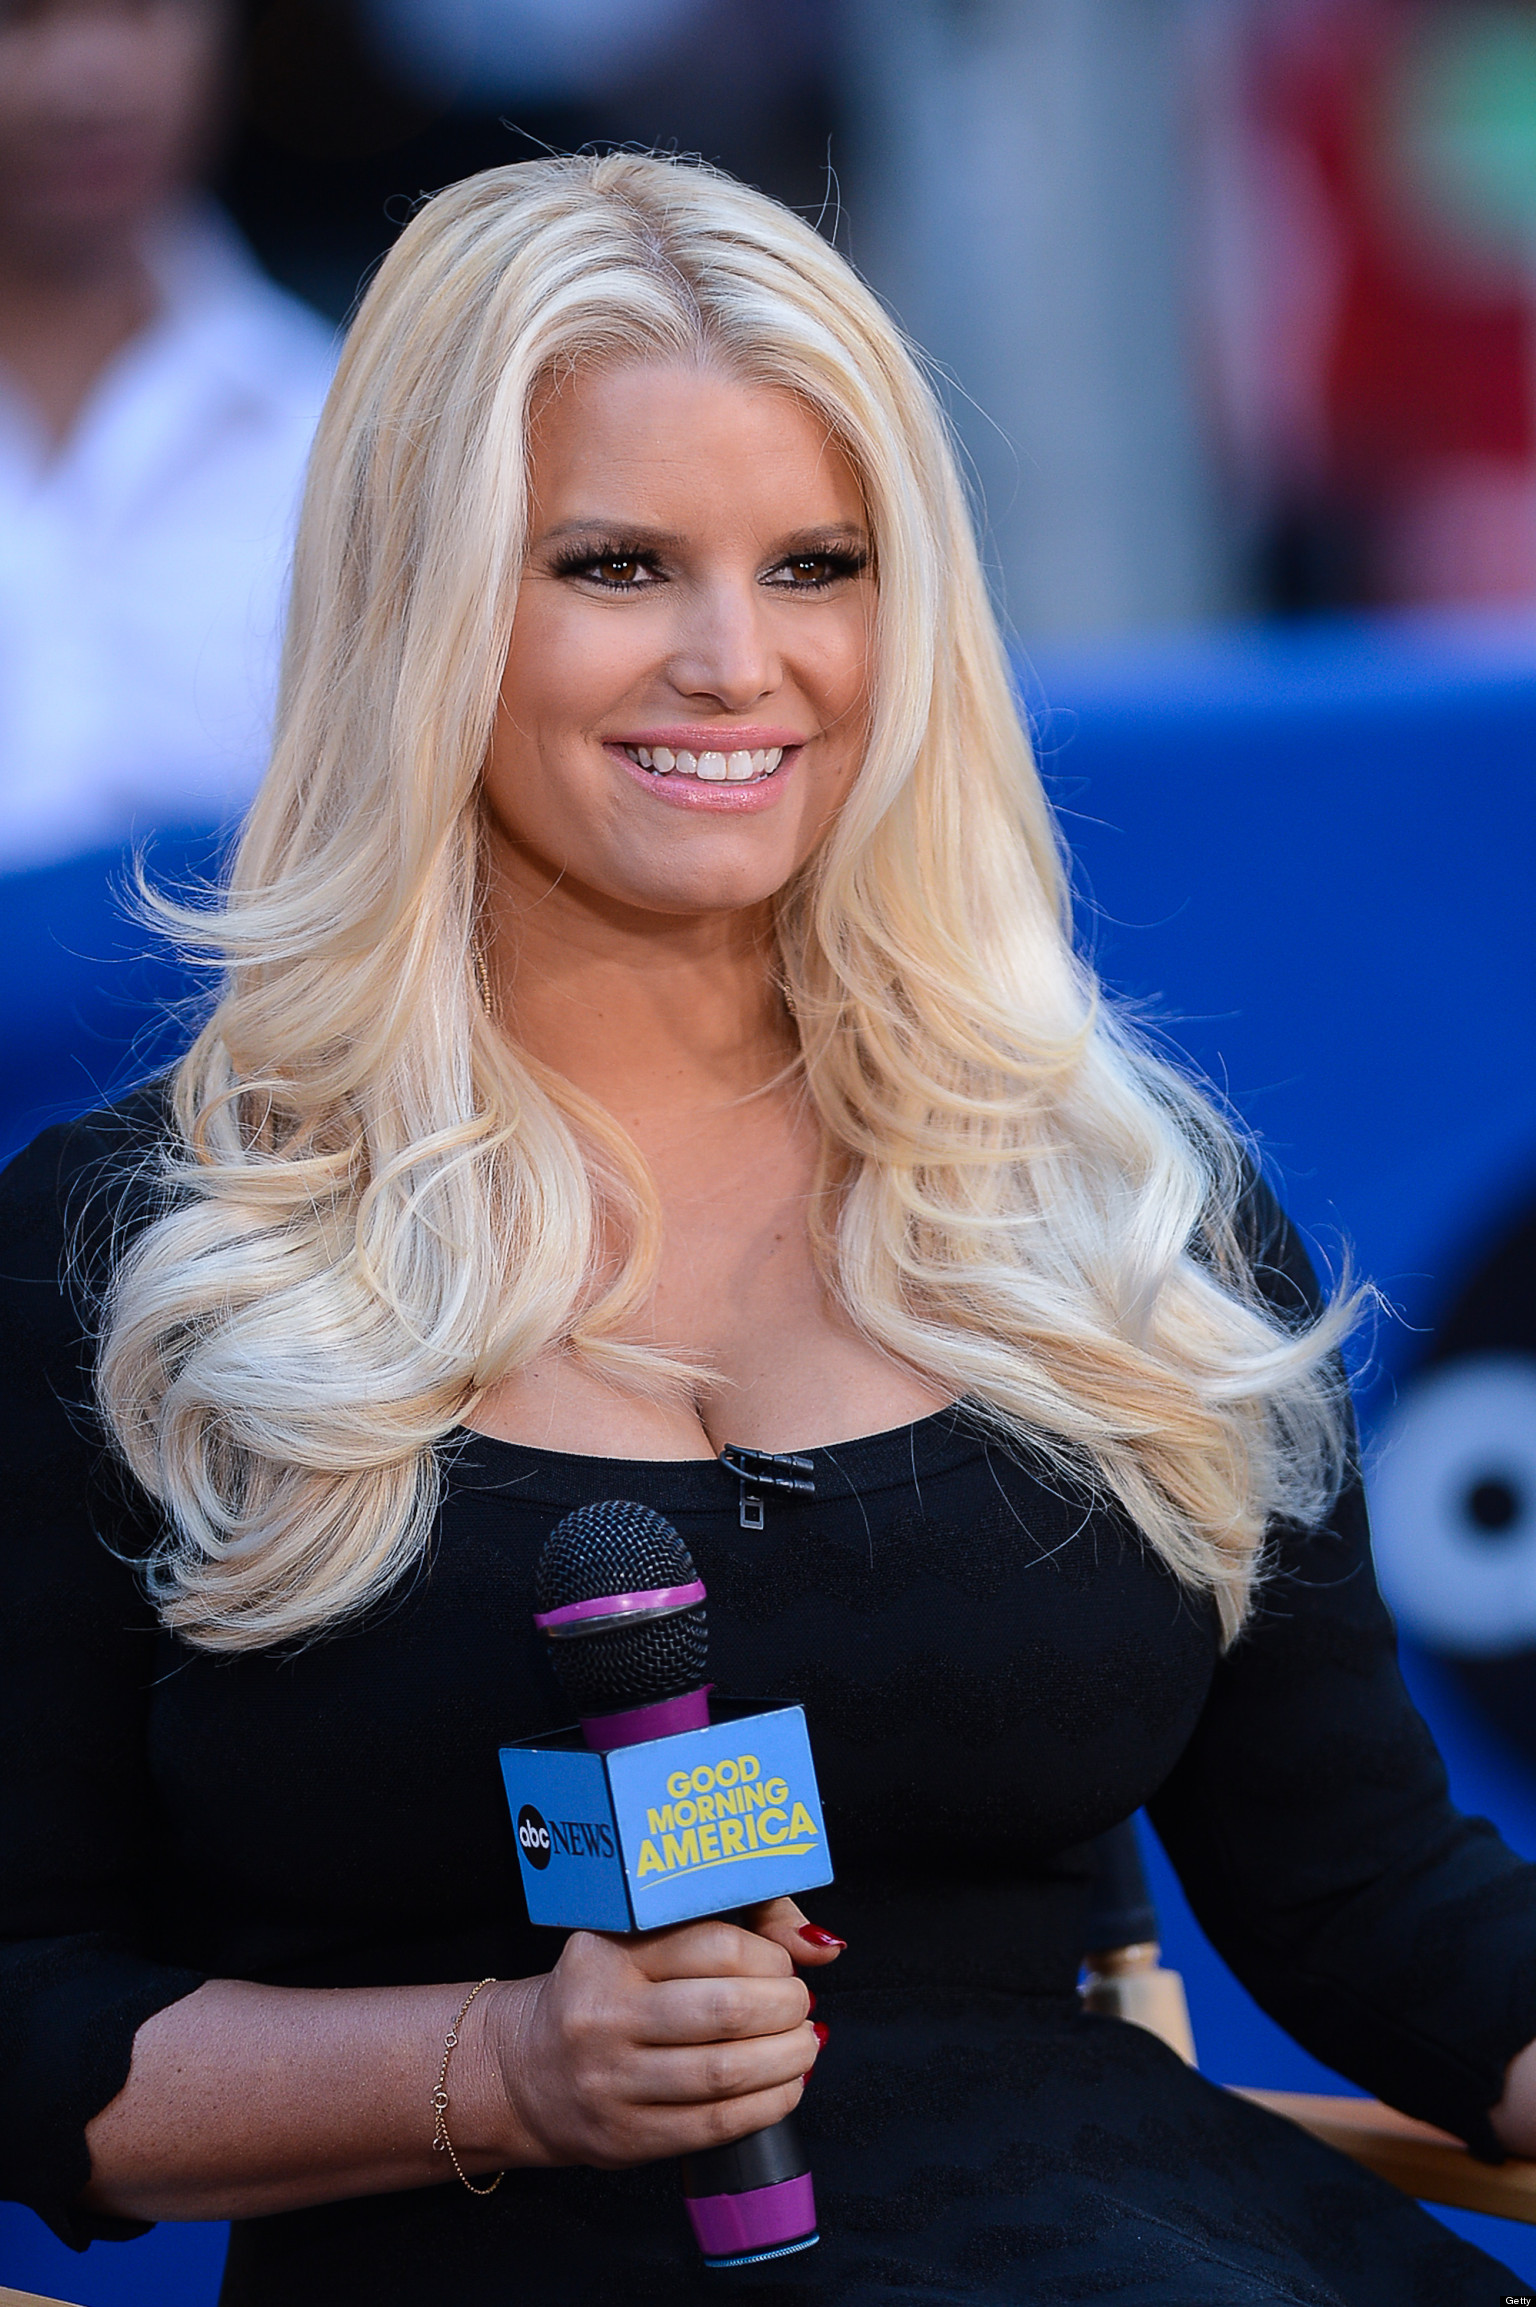 Jessica simpson weight loss singer loses 60 pounds in 6 months jessica simpson weight loss singer loses 60 pounds in 6 months huffpost publicscrutiny Images